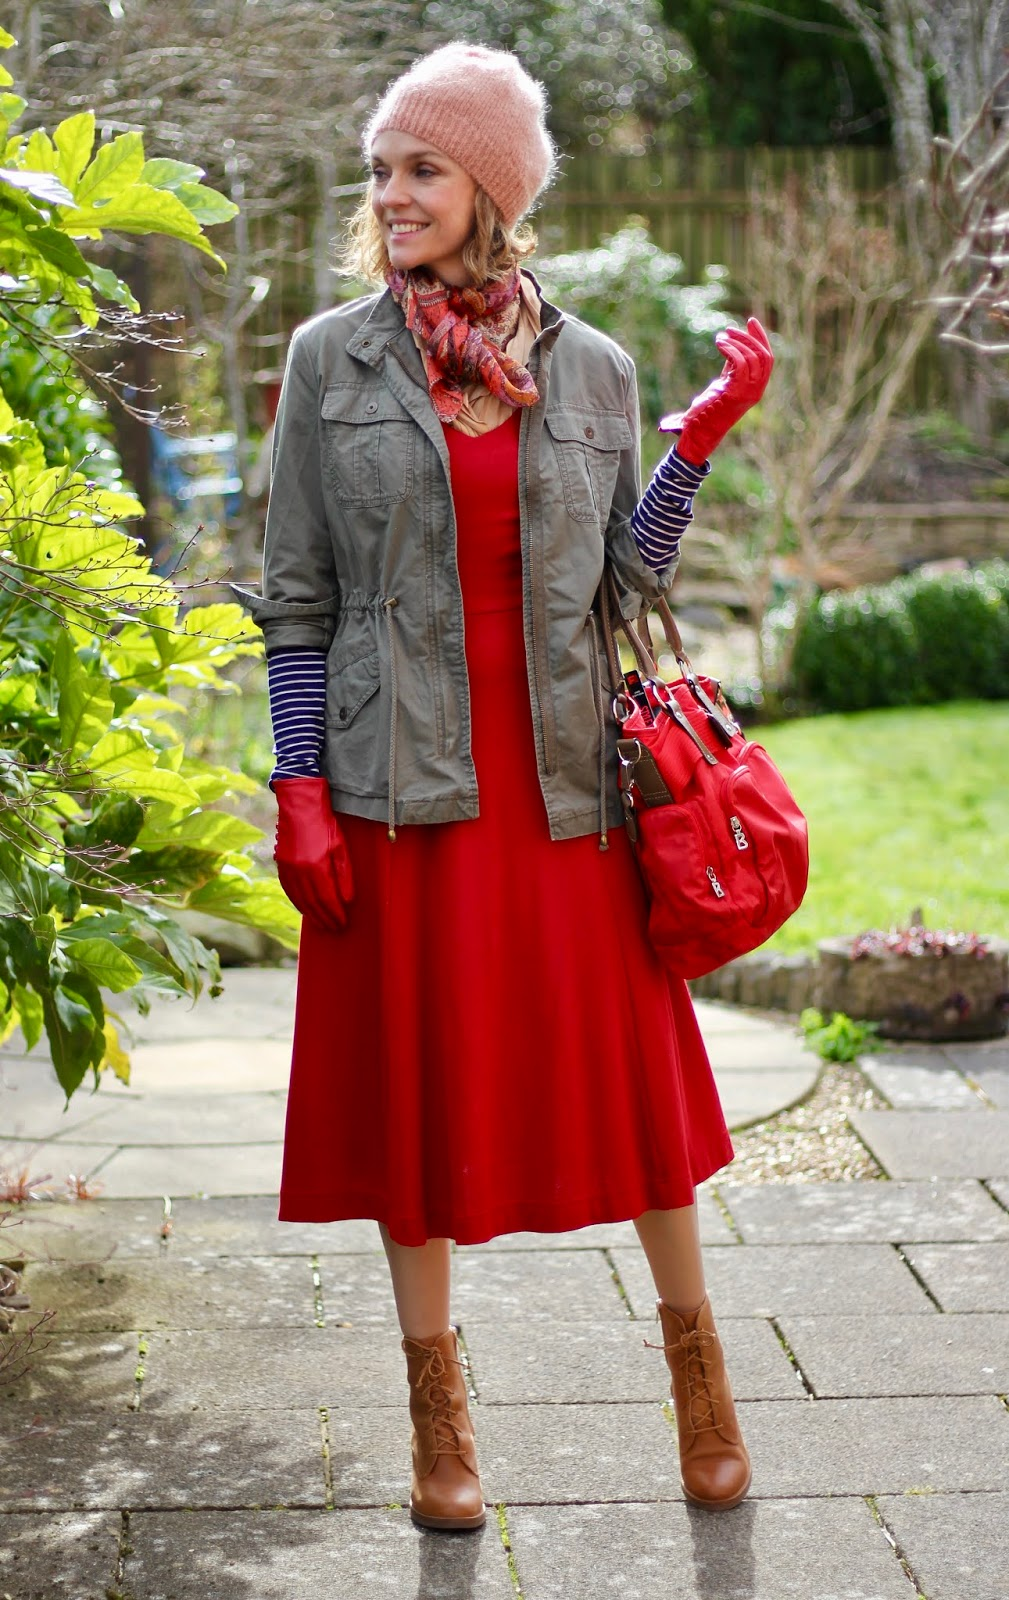 Red midi dress, khaki jacket & tan boots | Spring street style | Fake Fabulous